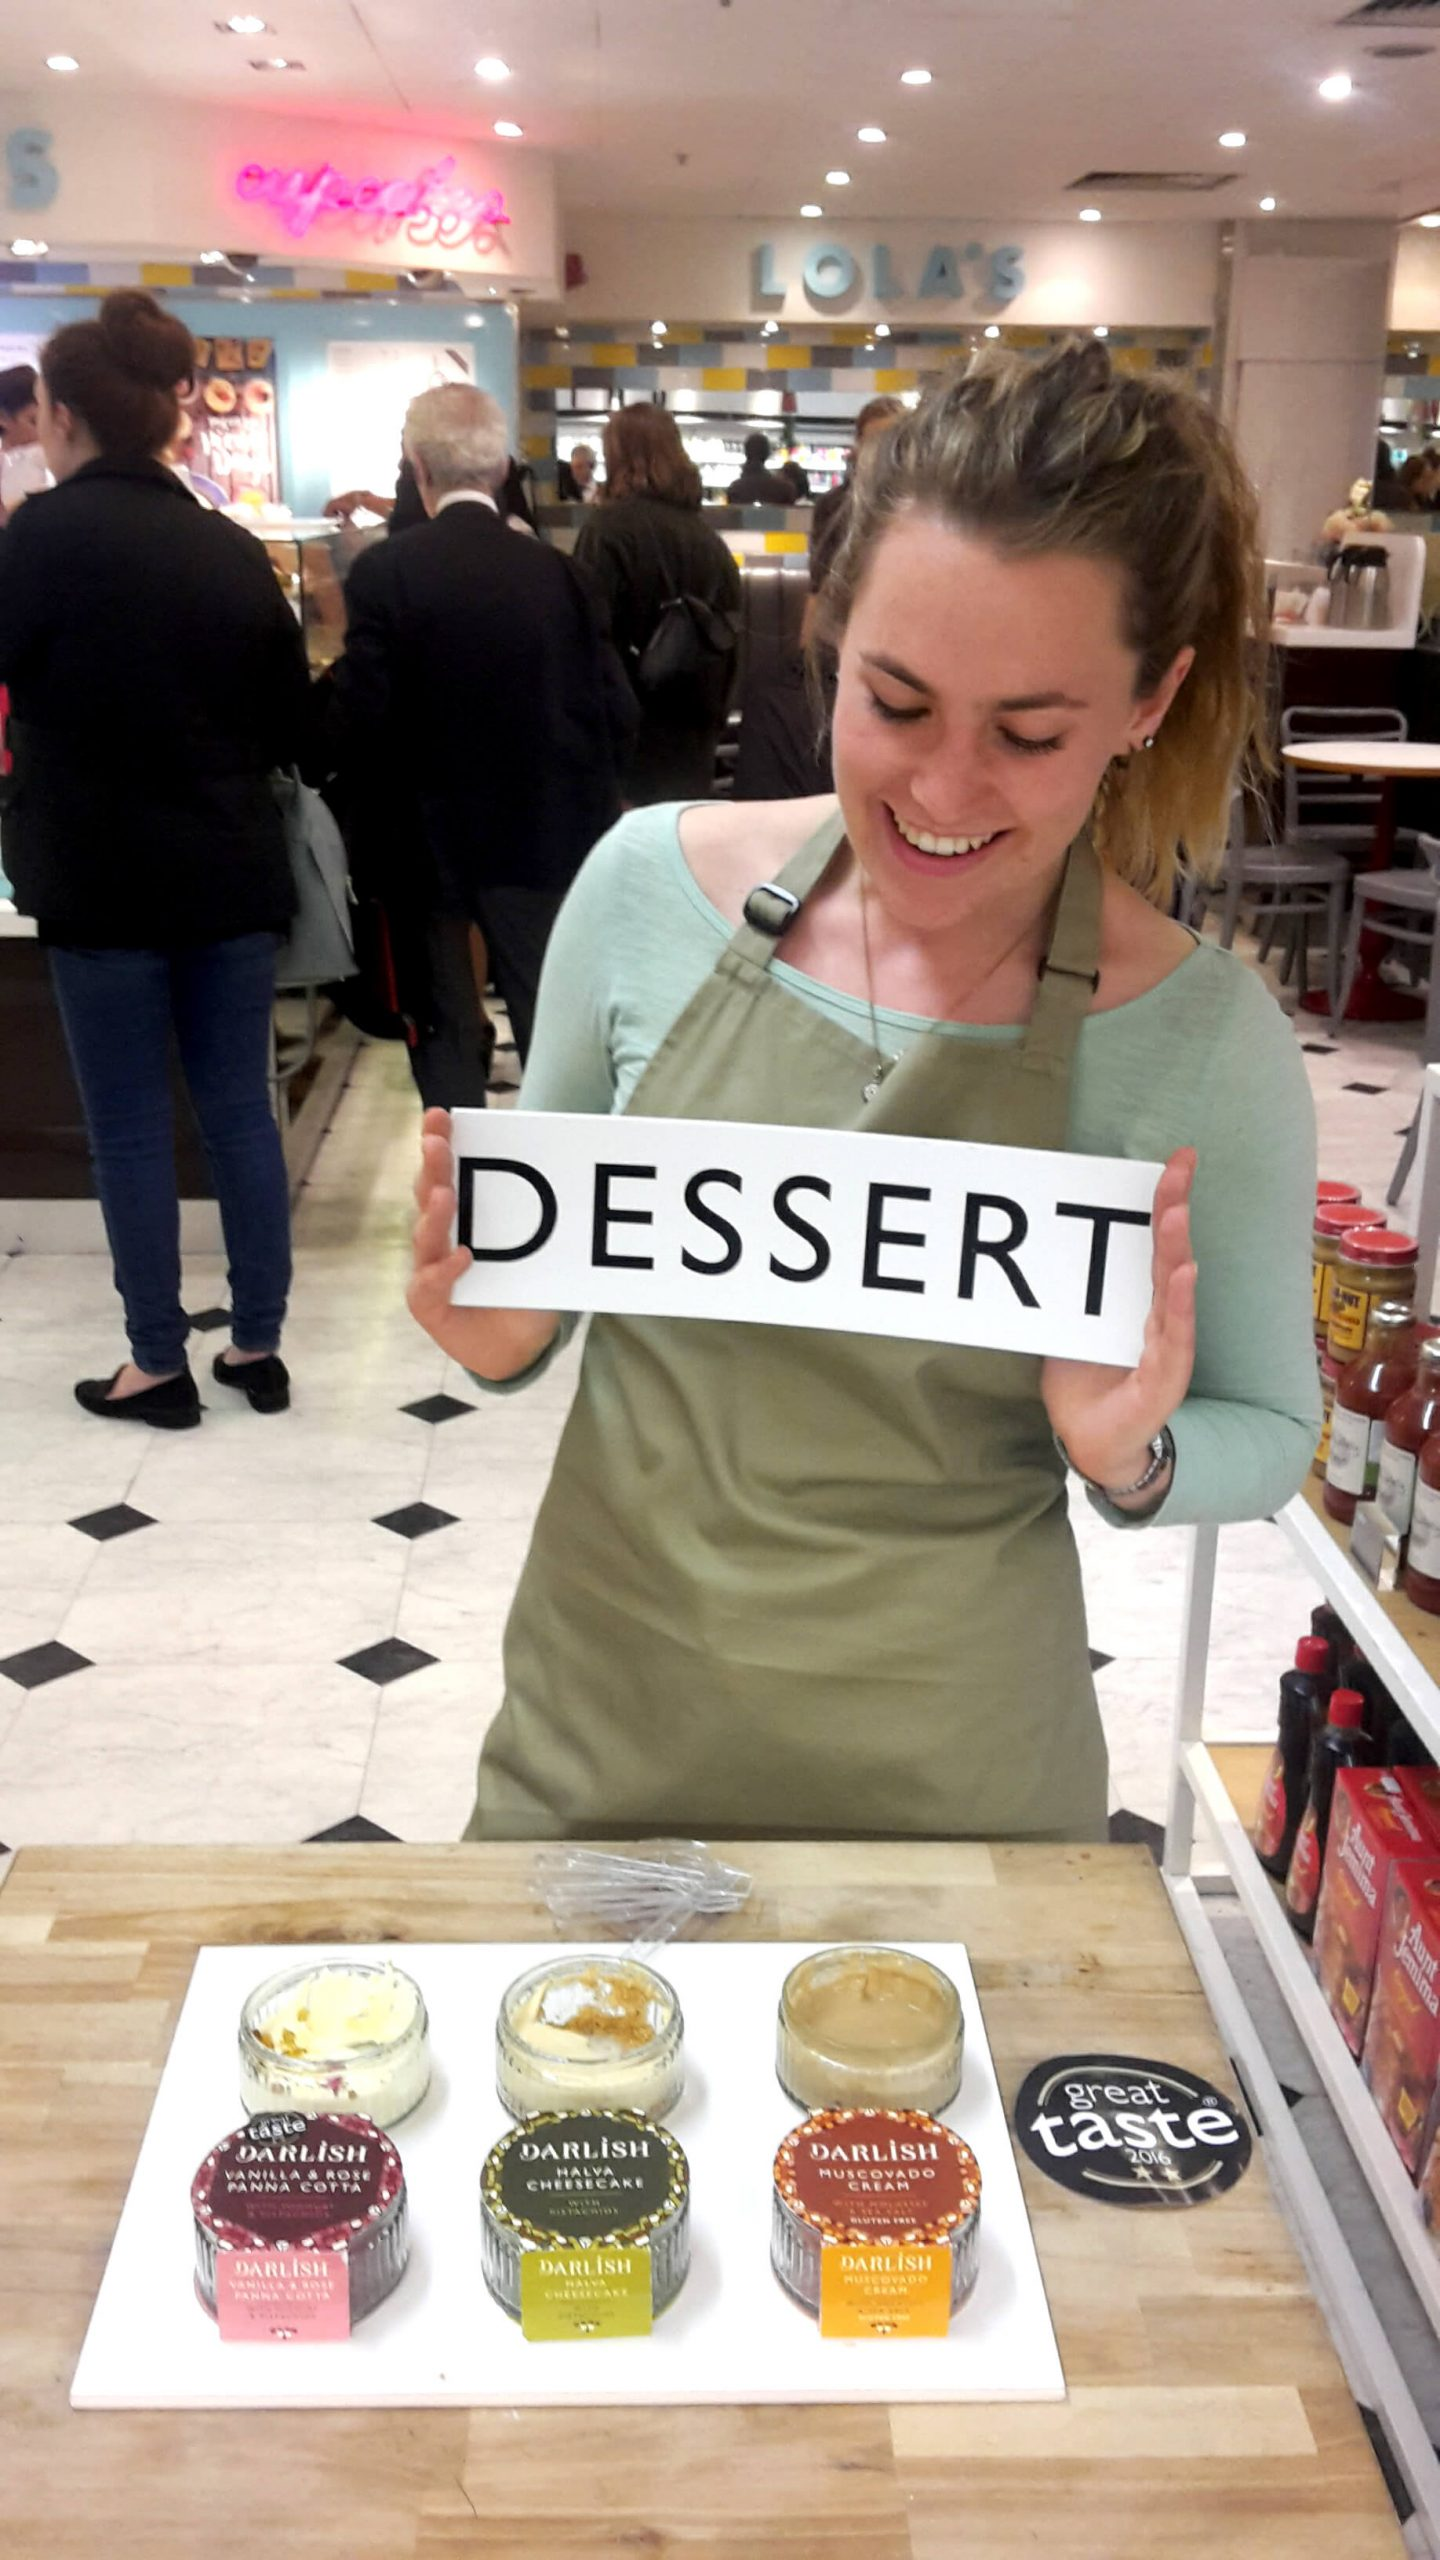 Young blonde woman looking downwards at a black and white 'dessert' sign that she is holding. She is standing behind a table with dessert pots laid out on it.